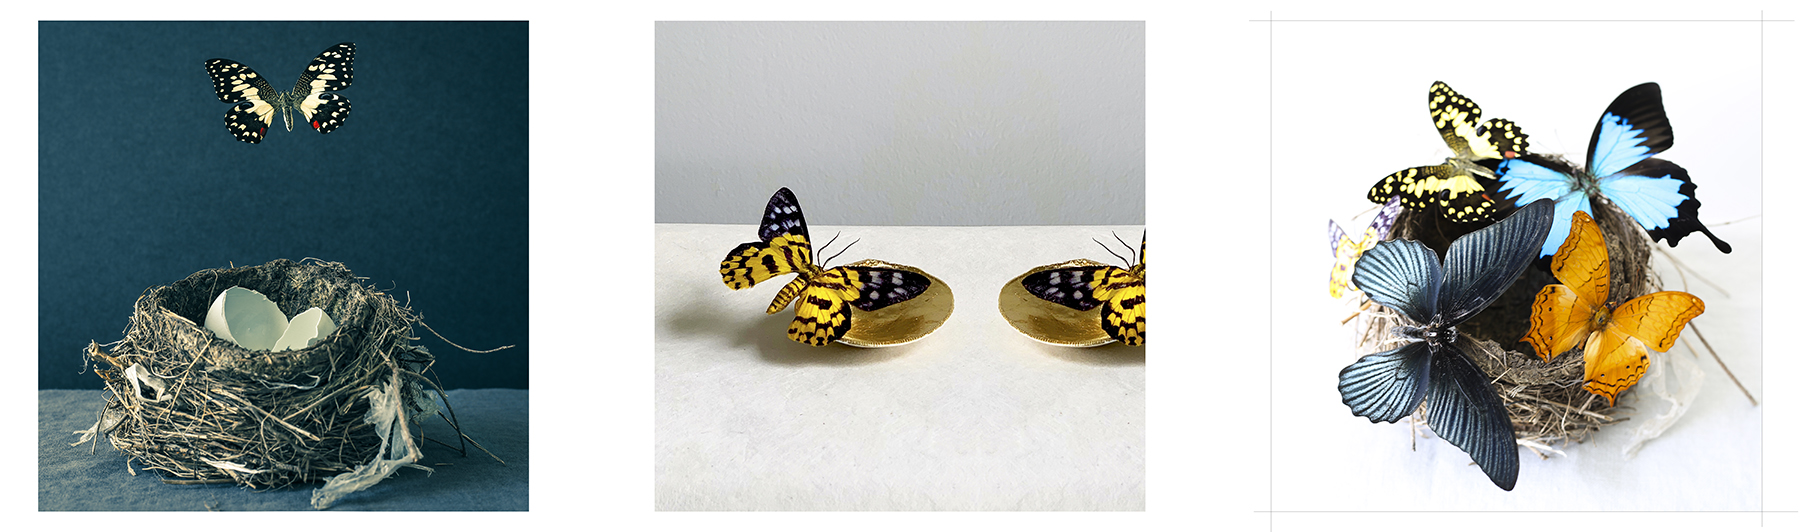 butterfly comp 1